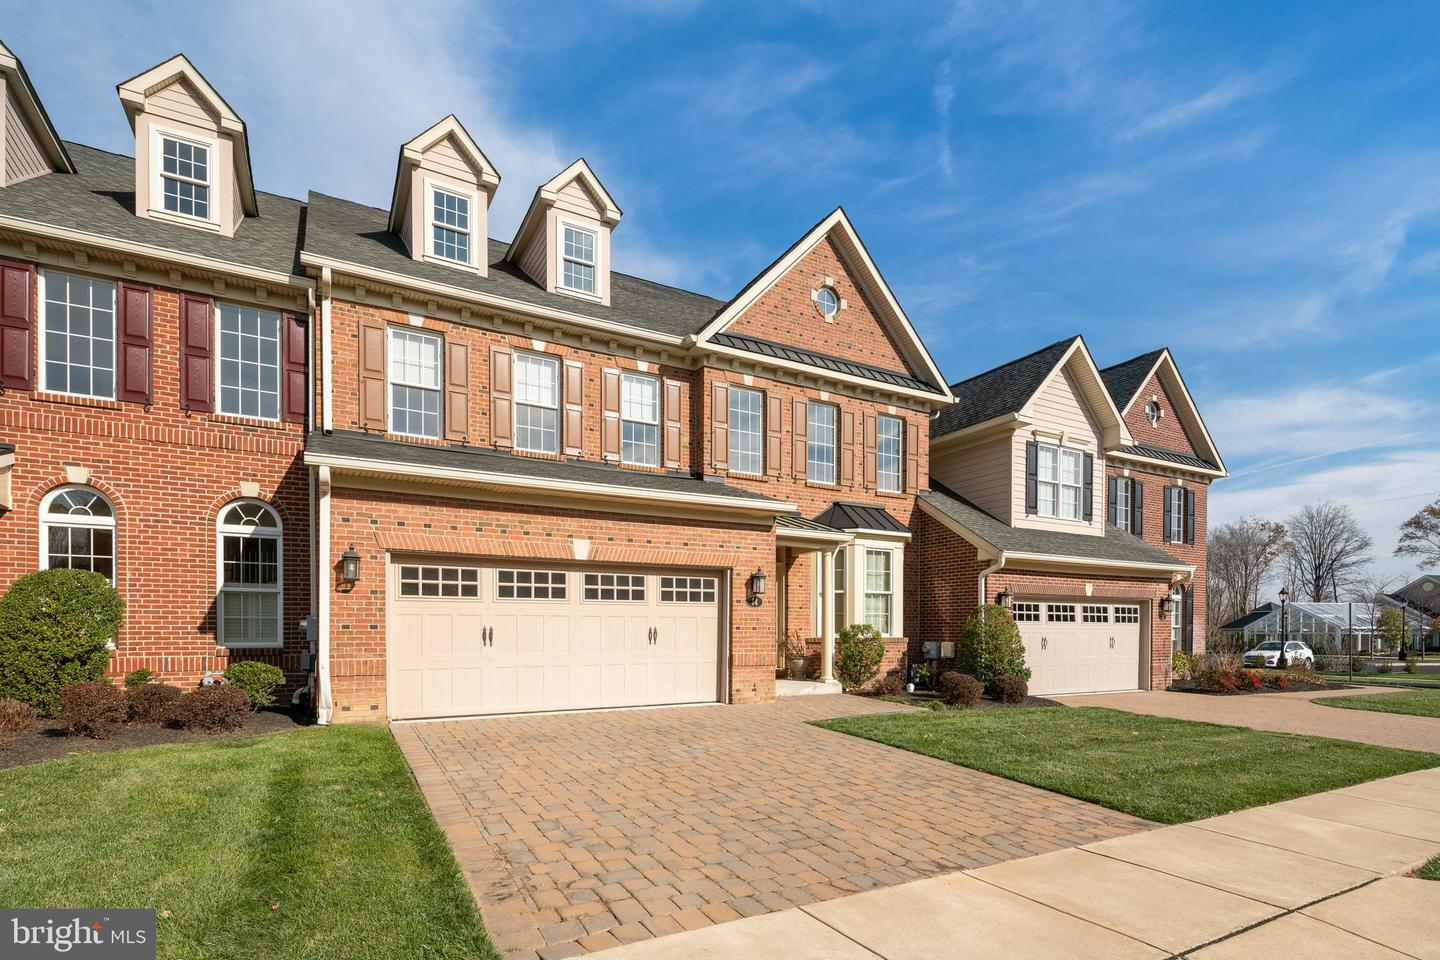 14 RITTENHOUSE CIR, NEWTOWN, PA